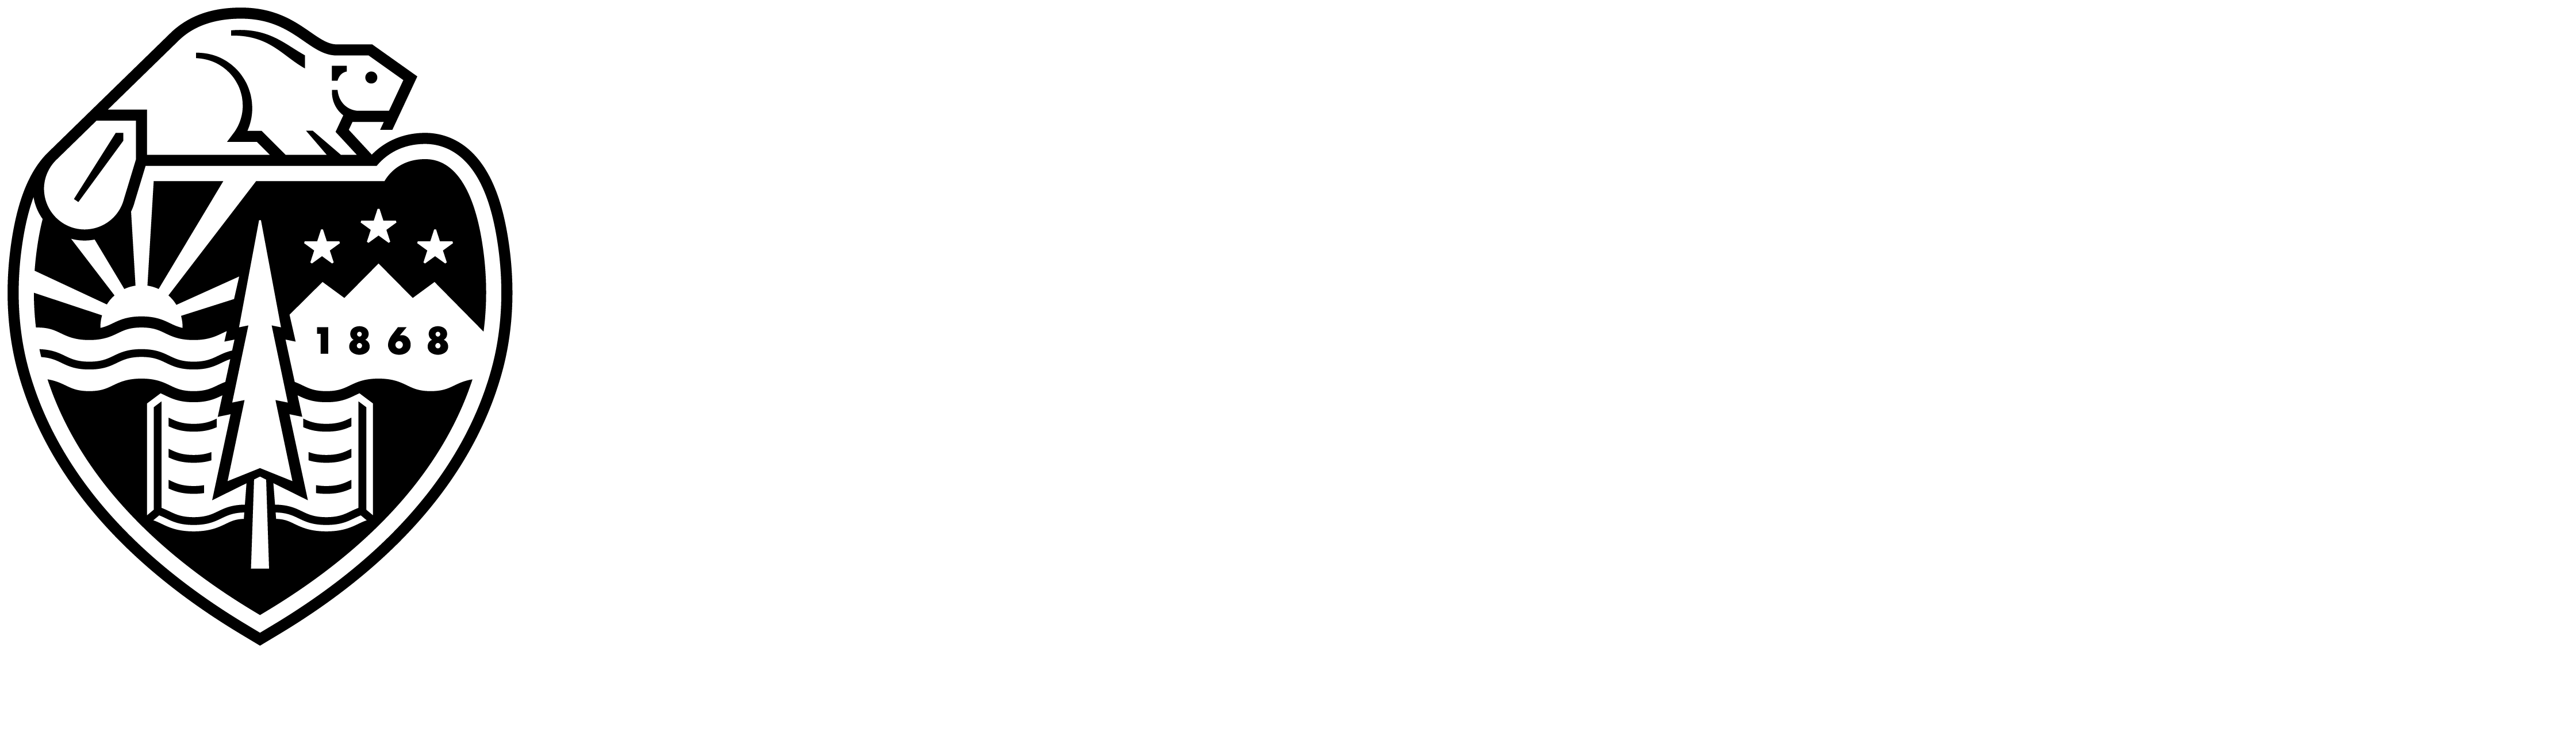 College of Earth, Ocean and Atmospheric Sciences companion OSU logo